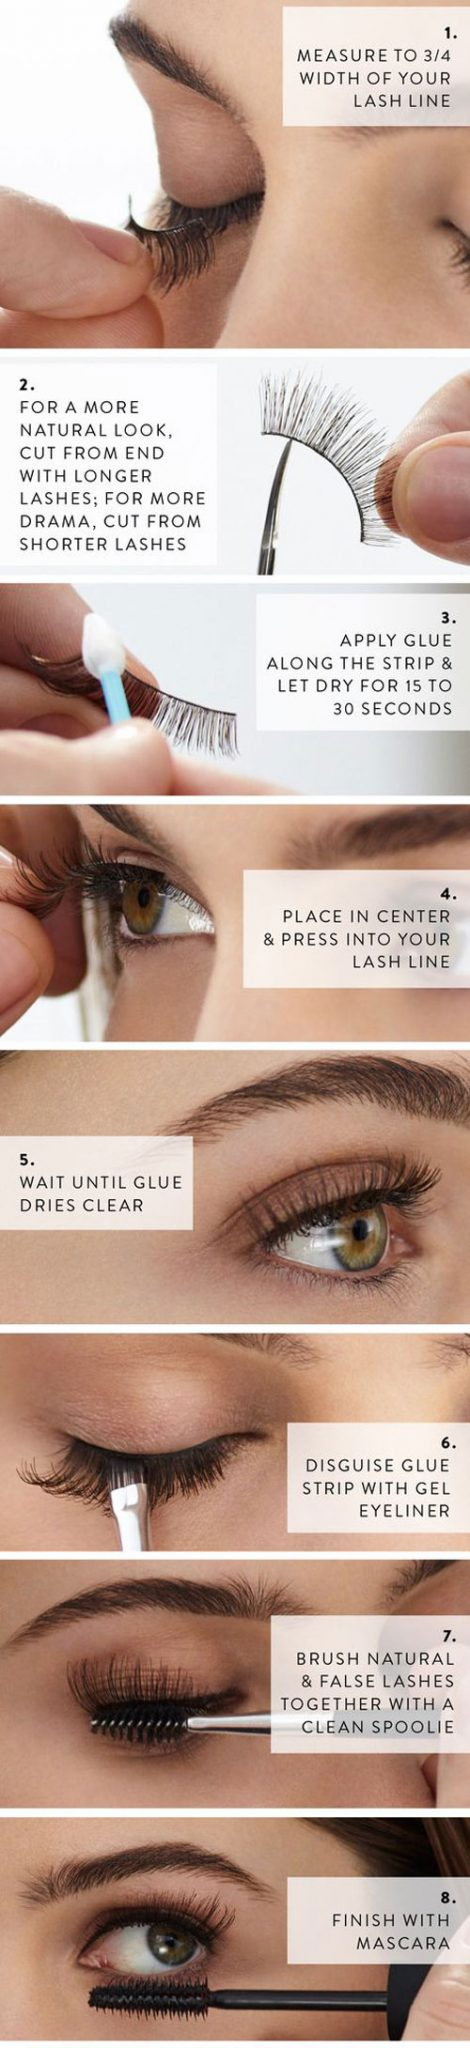 How To Apply False Eyelashes For The First Time With Pictures